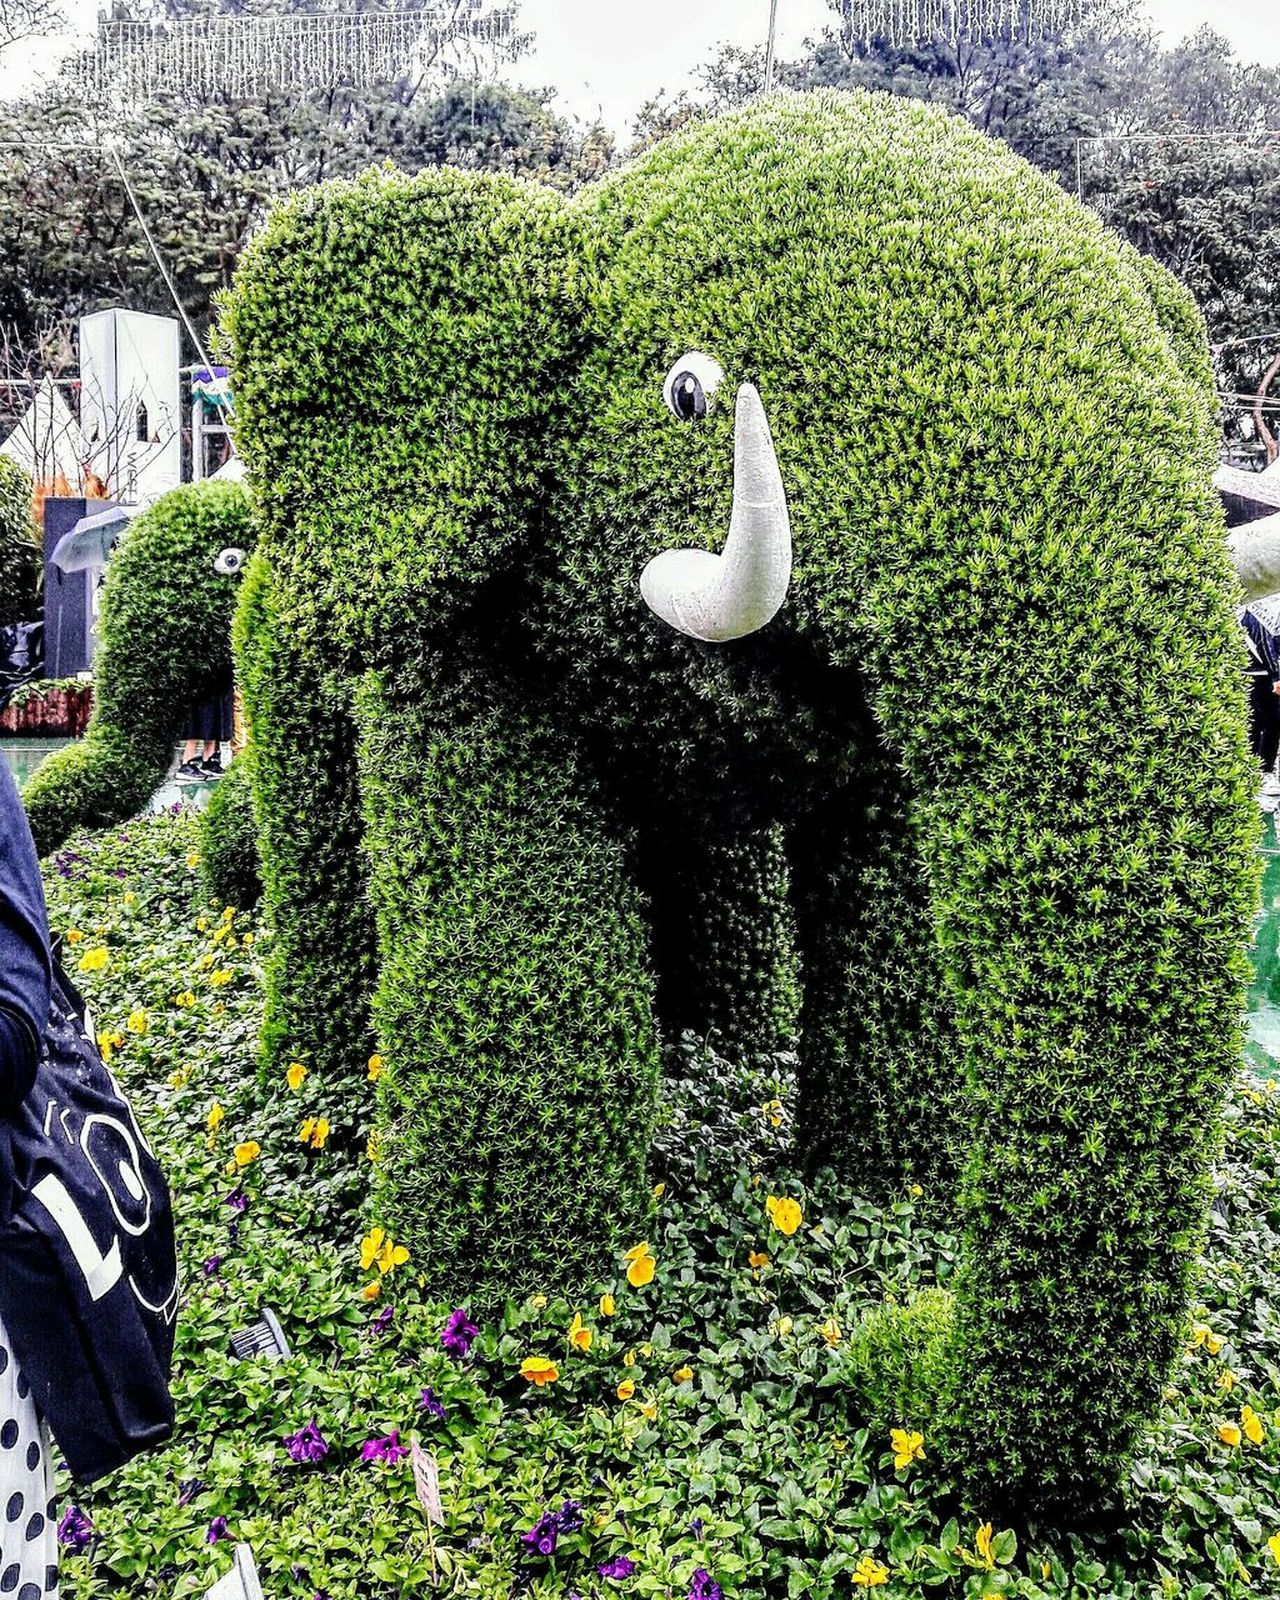 Hong Kong Flower Show 2017 Victoria Park Green Color Growth Plants Outdoors Elephant